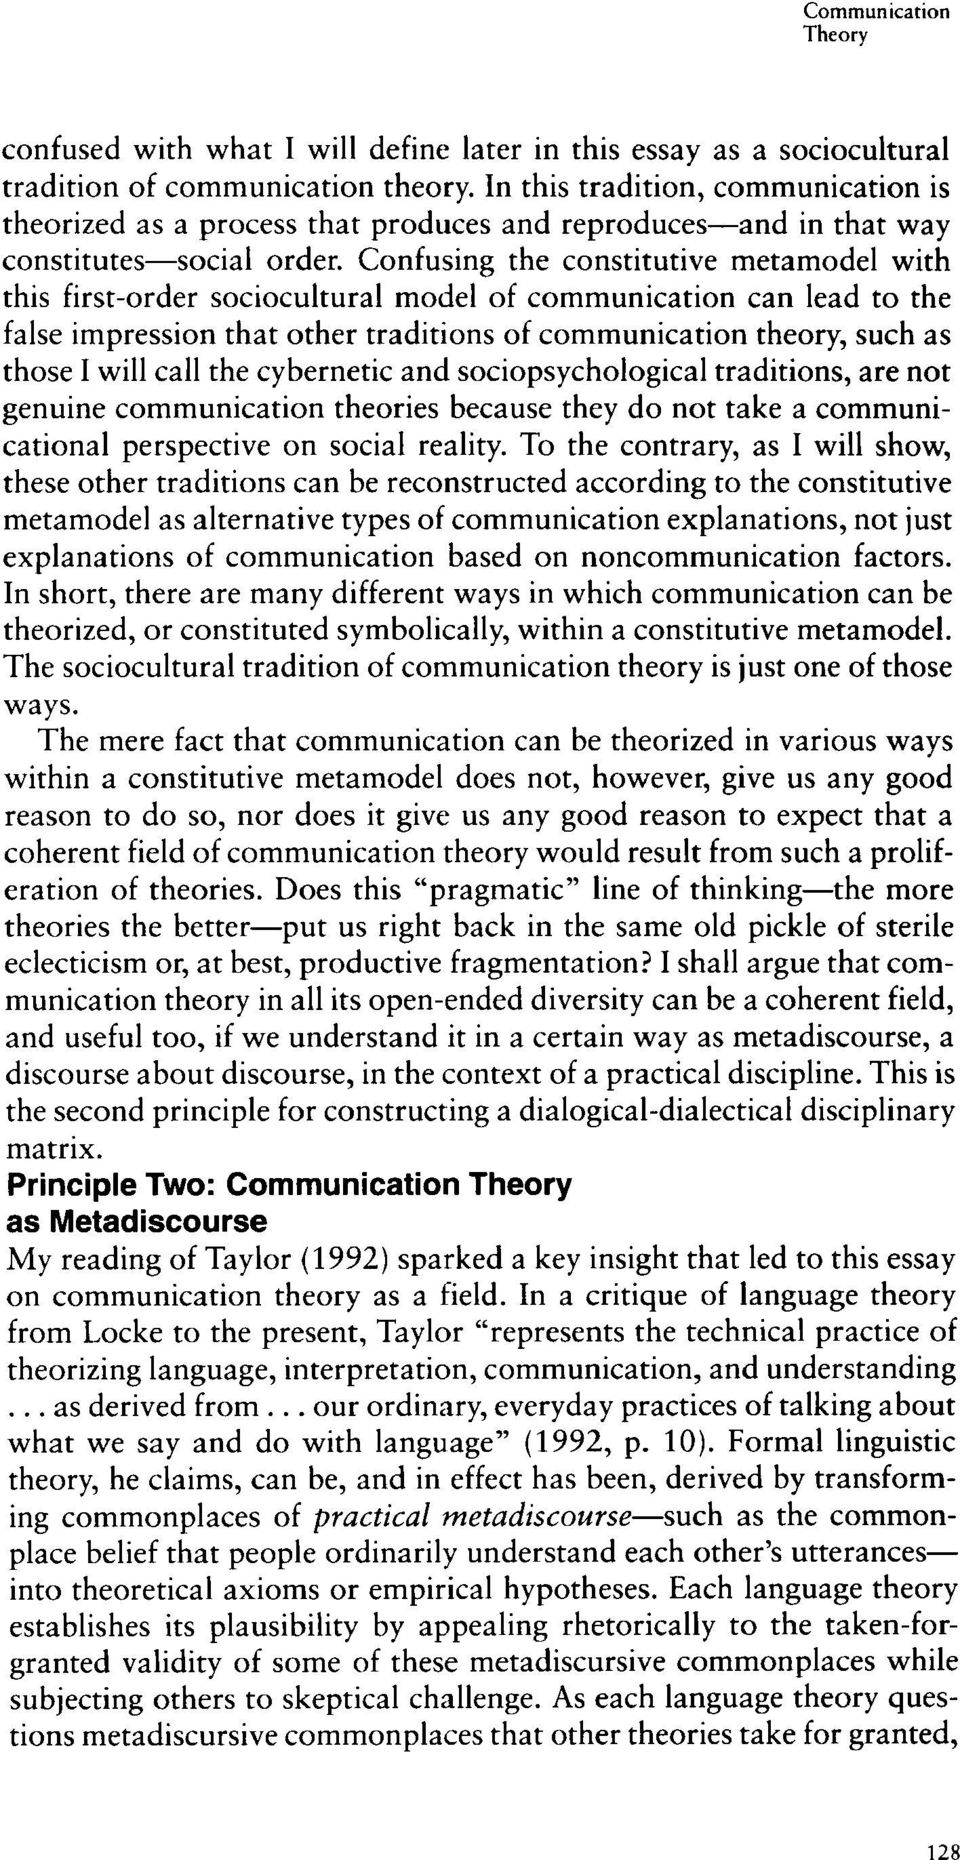 Confusing the constitutive metamodel with this first-order sociocultural model of communication can lead to the false impression that other traditions of communication theory, such as those I will